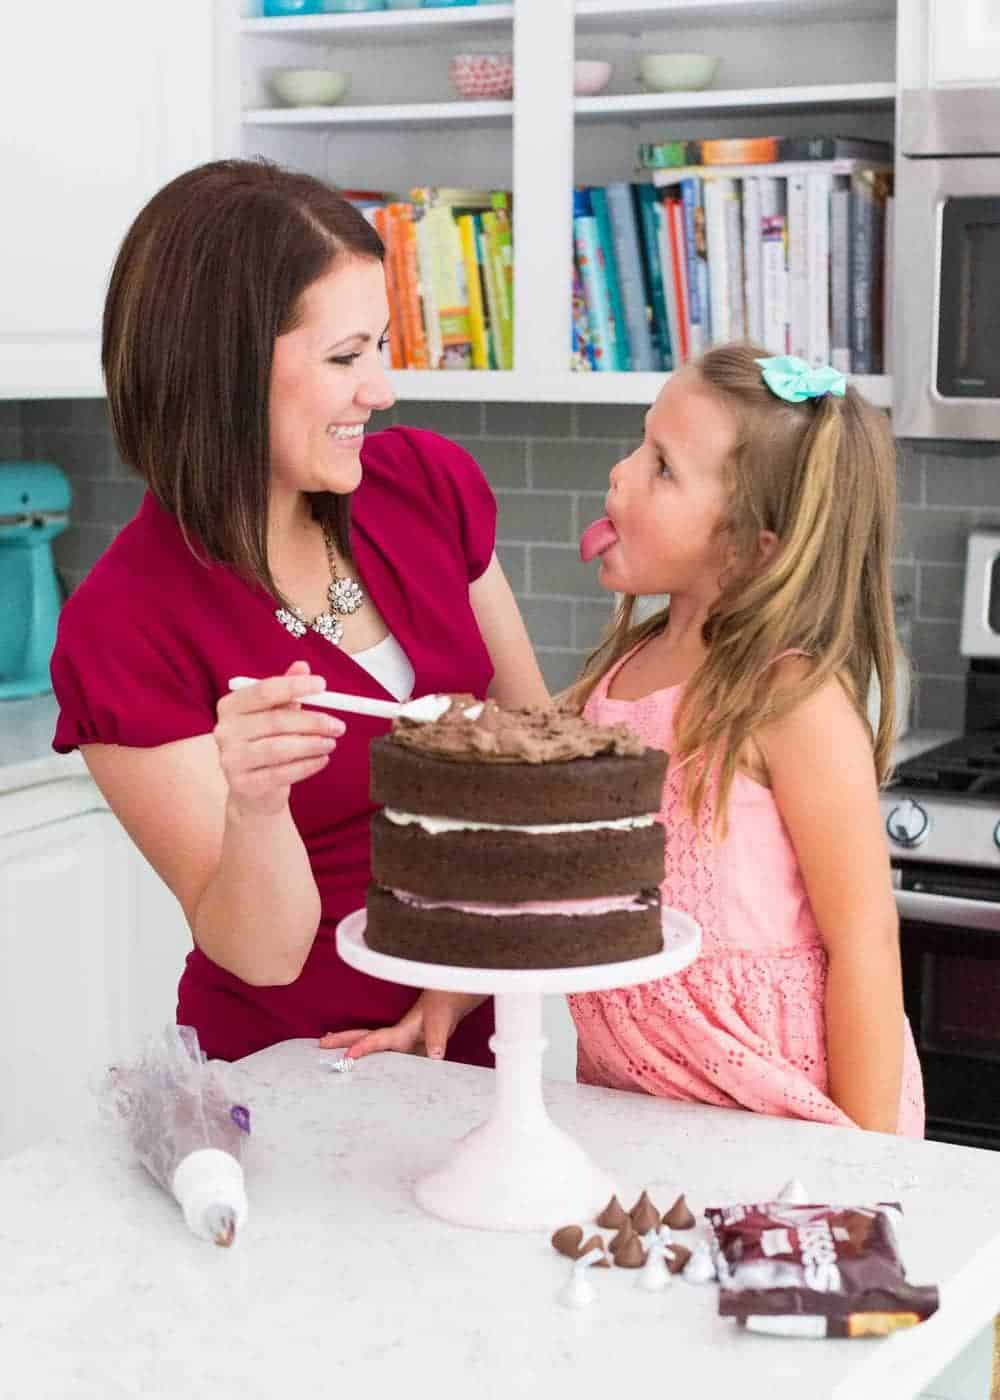 woman spreading chocolate frosting onto Neapolitan cake with daughter